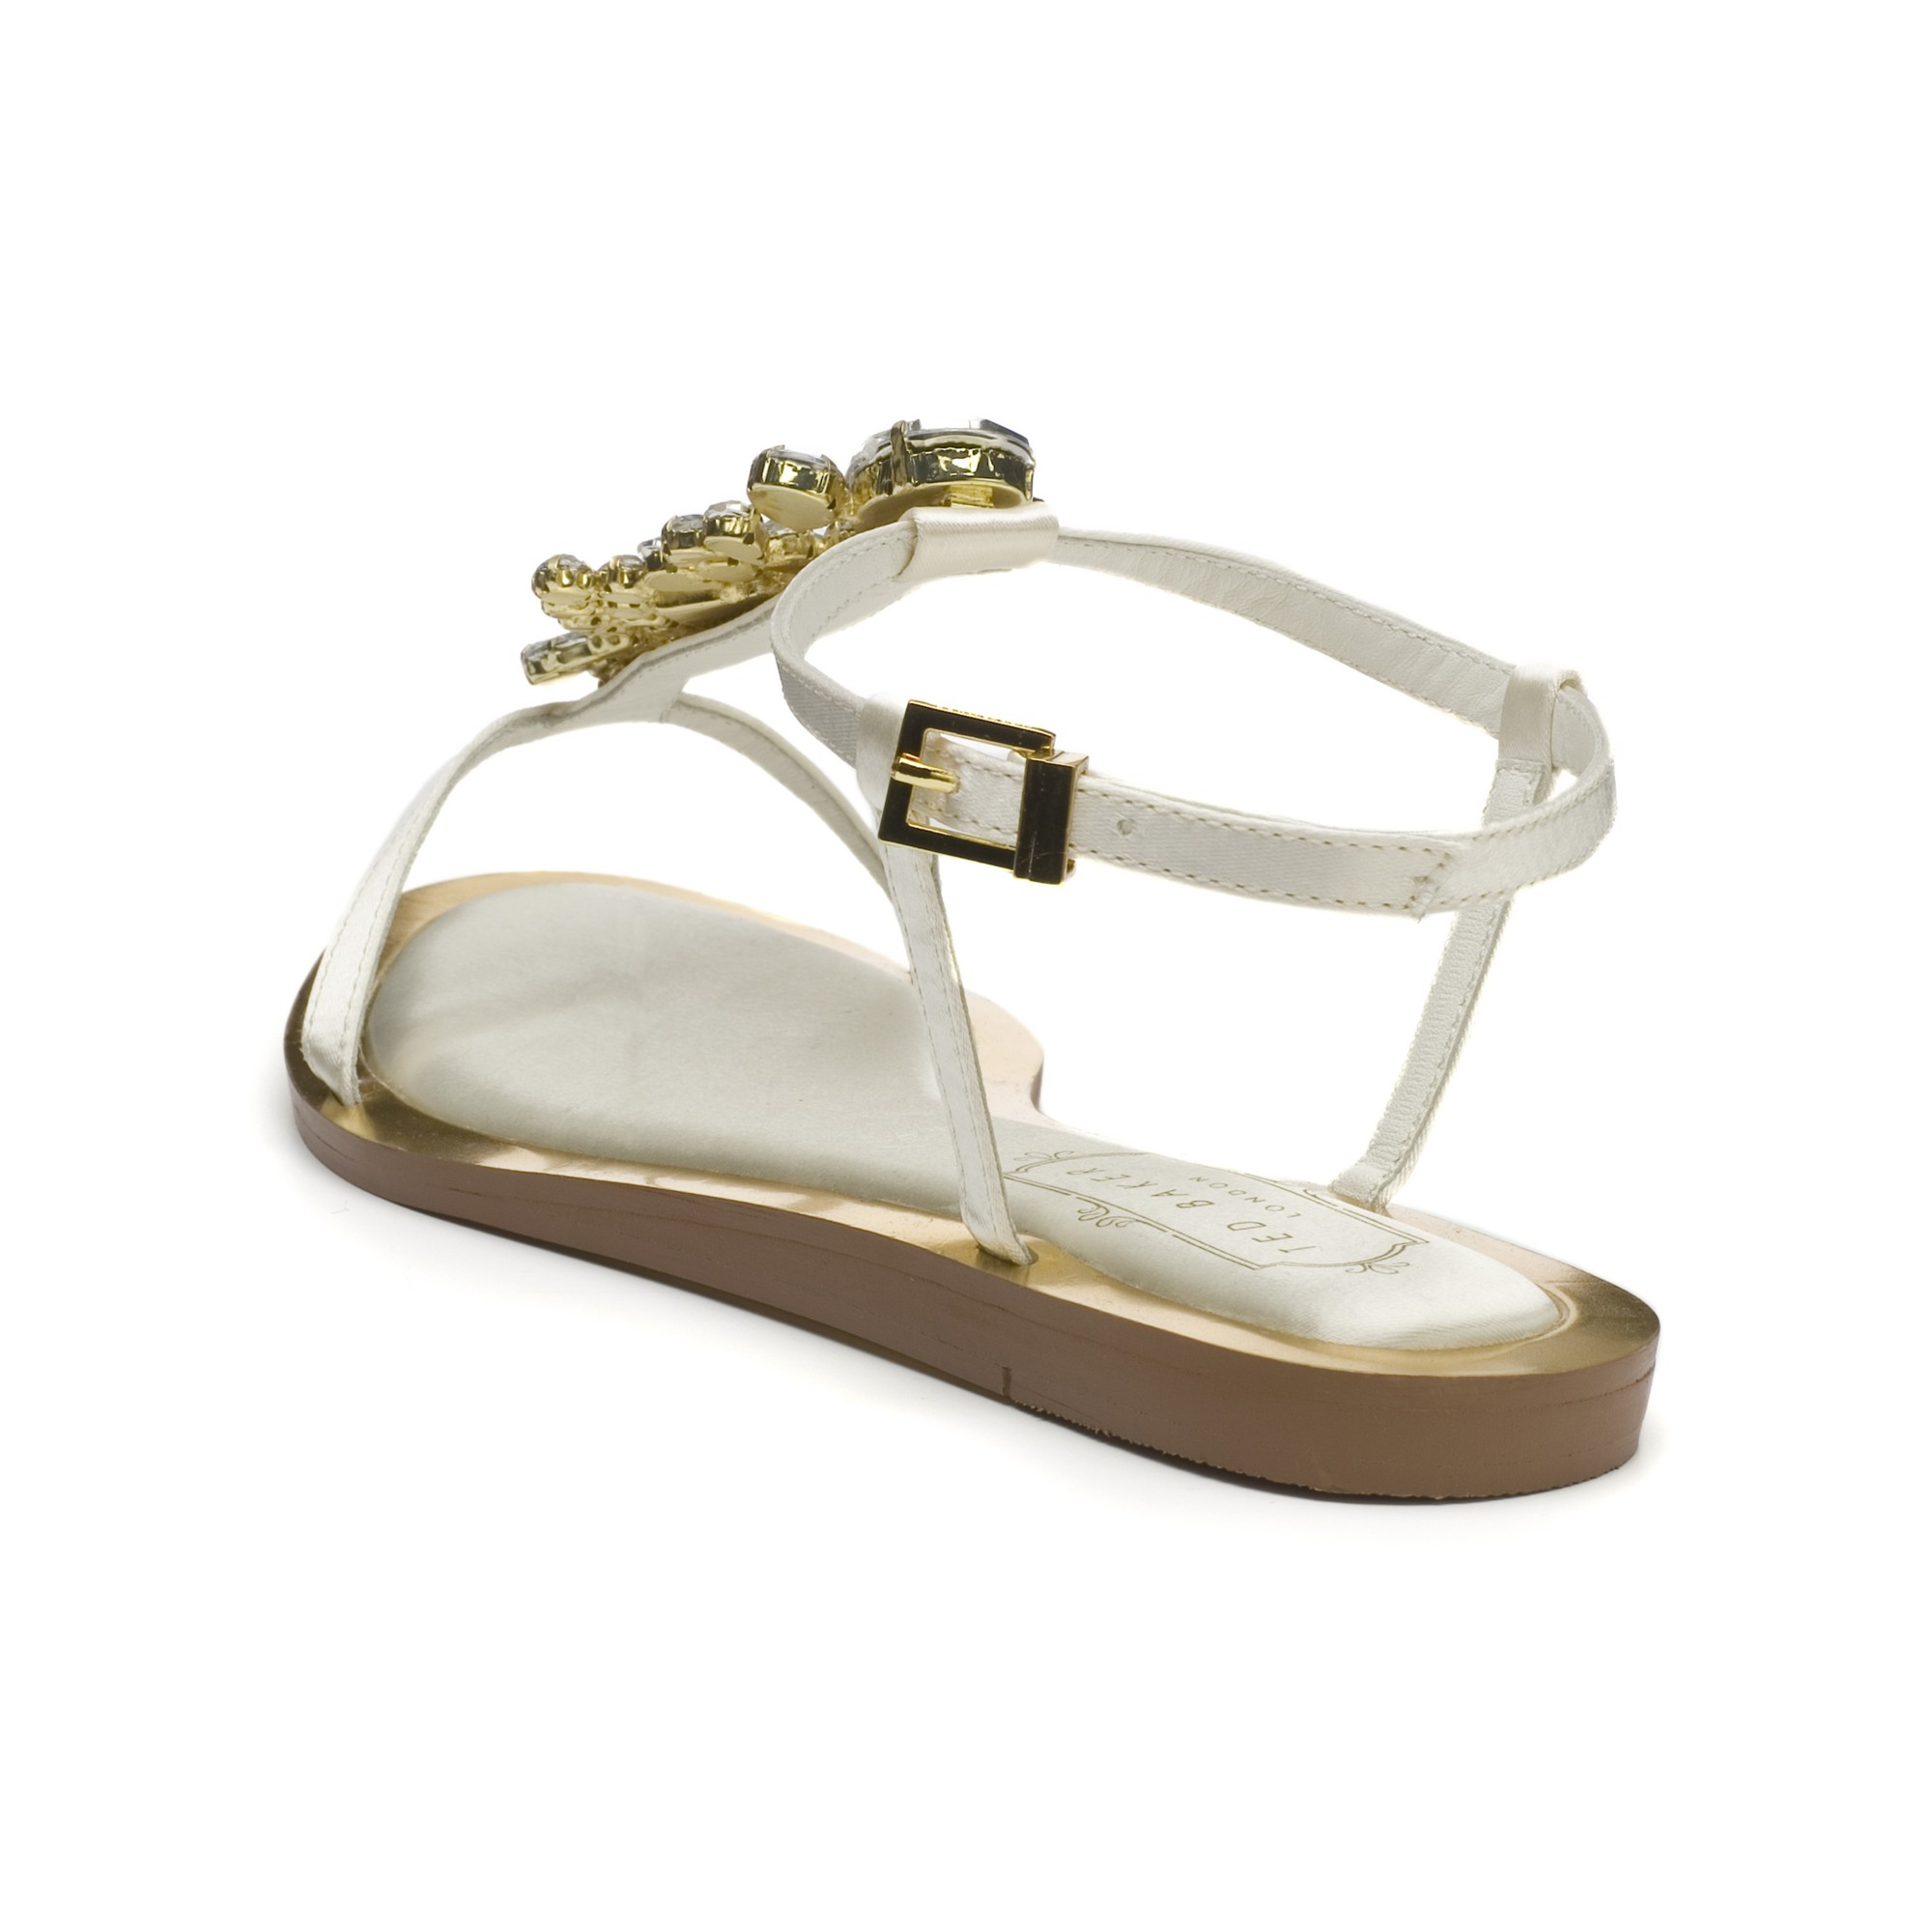 6e7443f17 Ted Baker Tie The Knot Roseupe Jewelled Sandals in White - Lyst